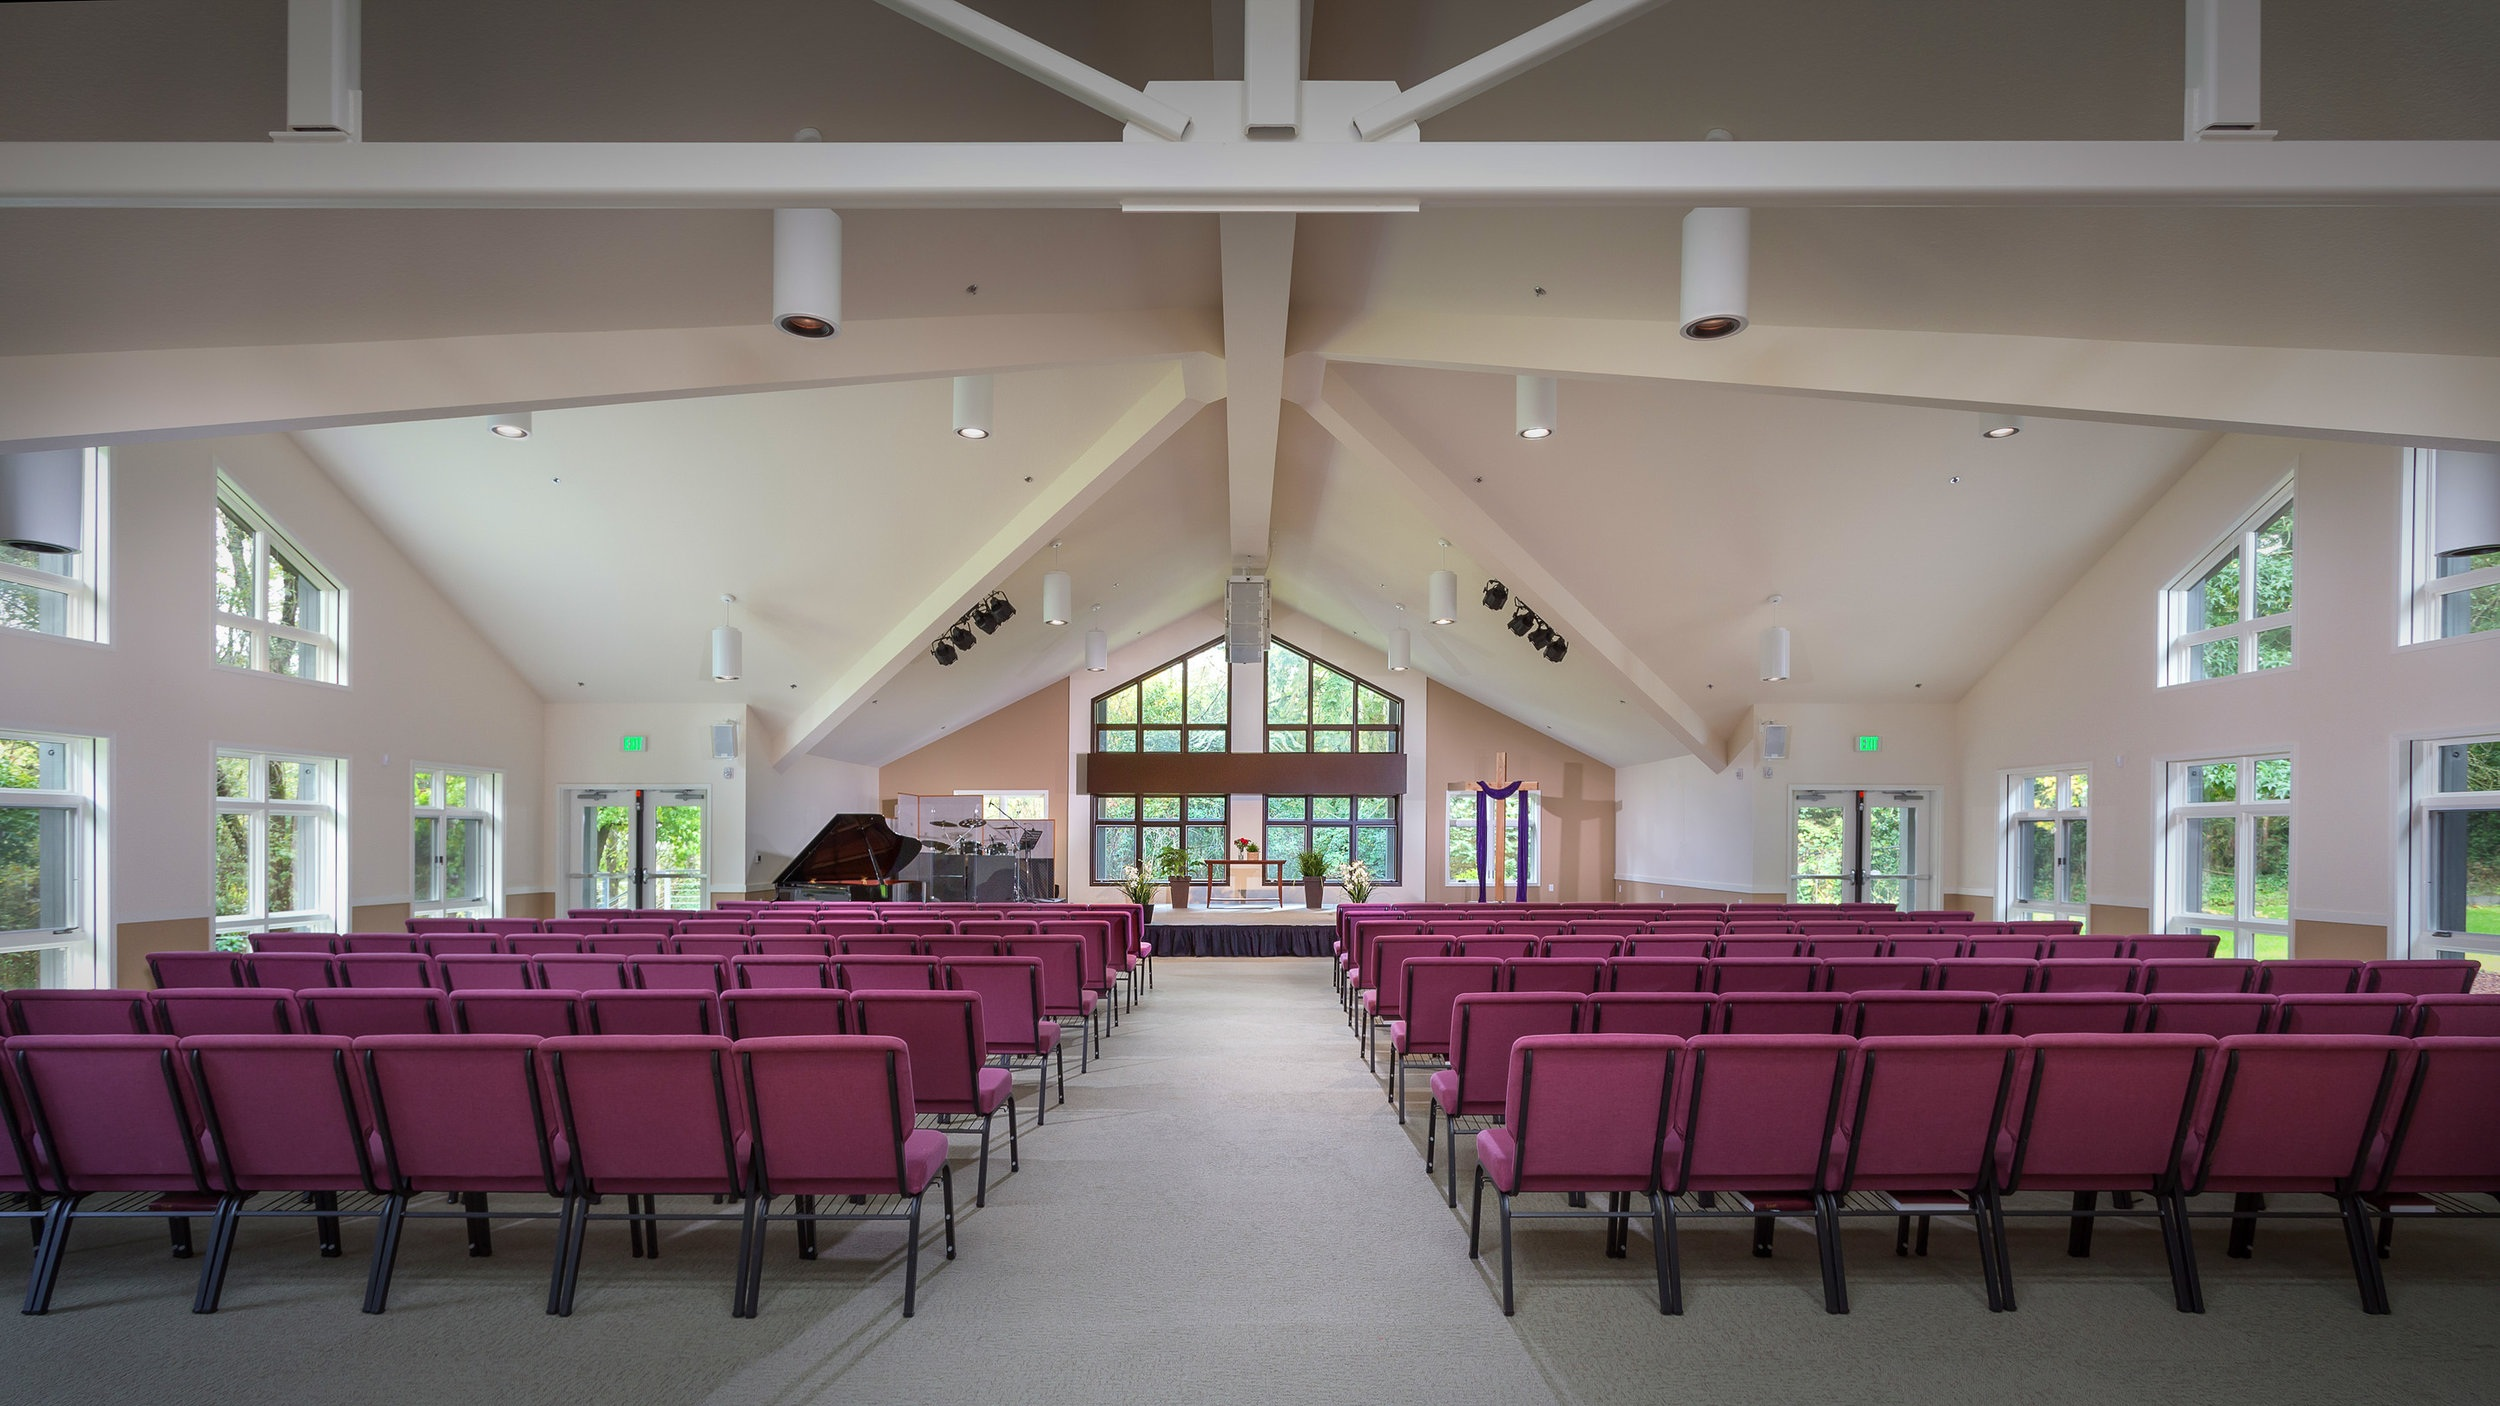 Our worship center is full of natural light, clean and elegant lines, with a view of trees and green space.